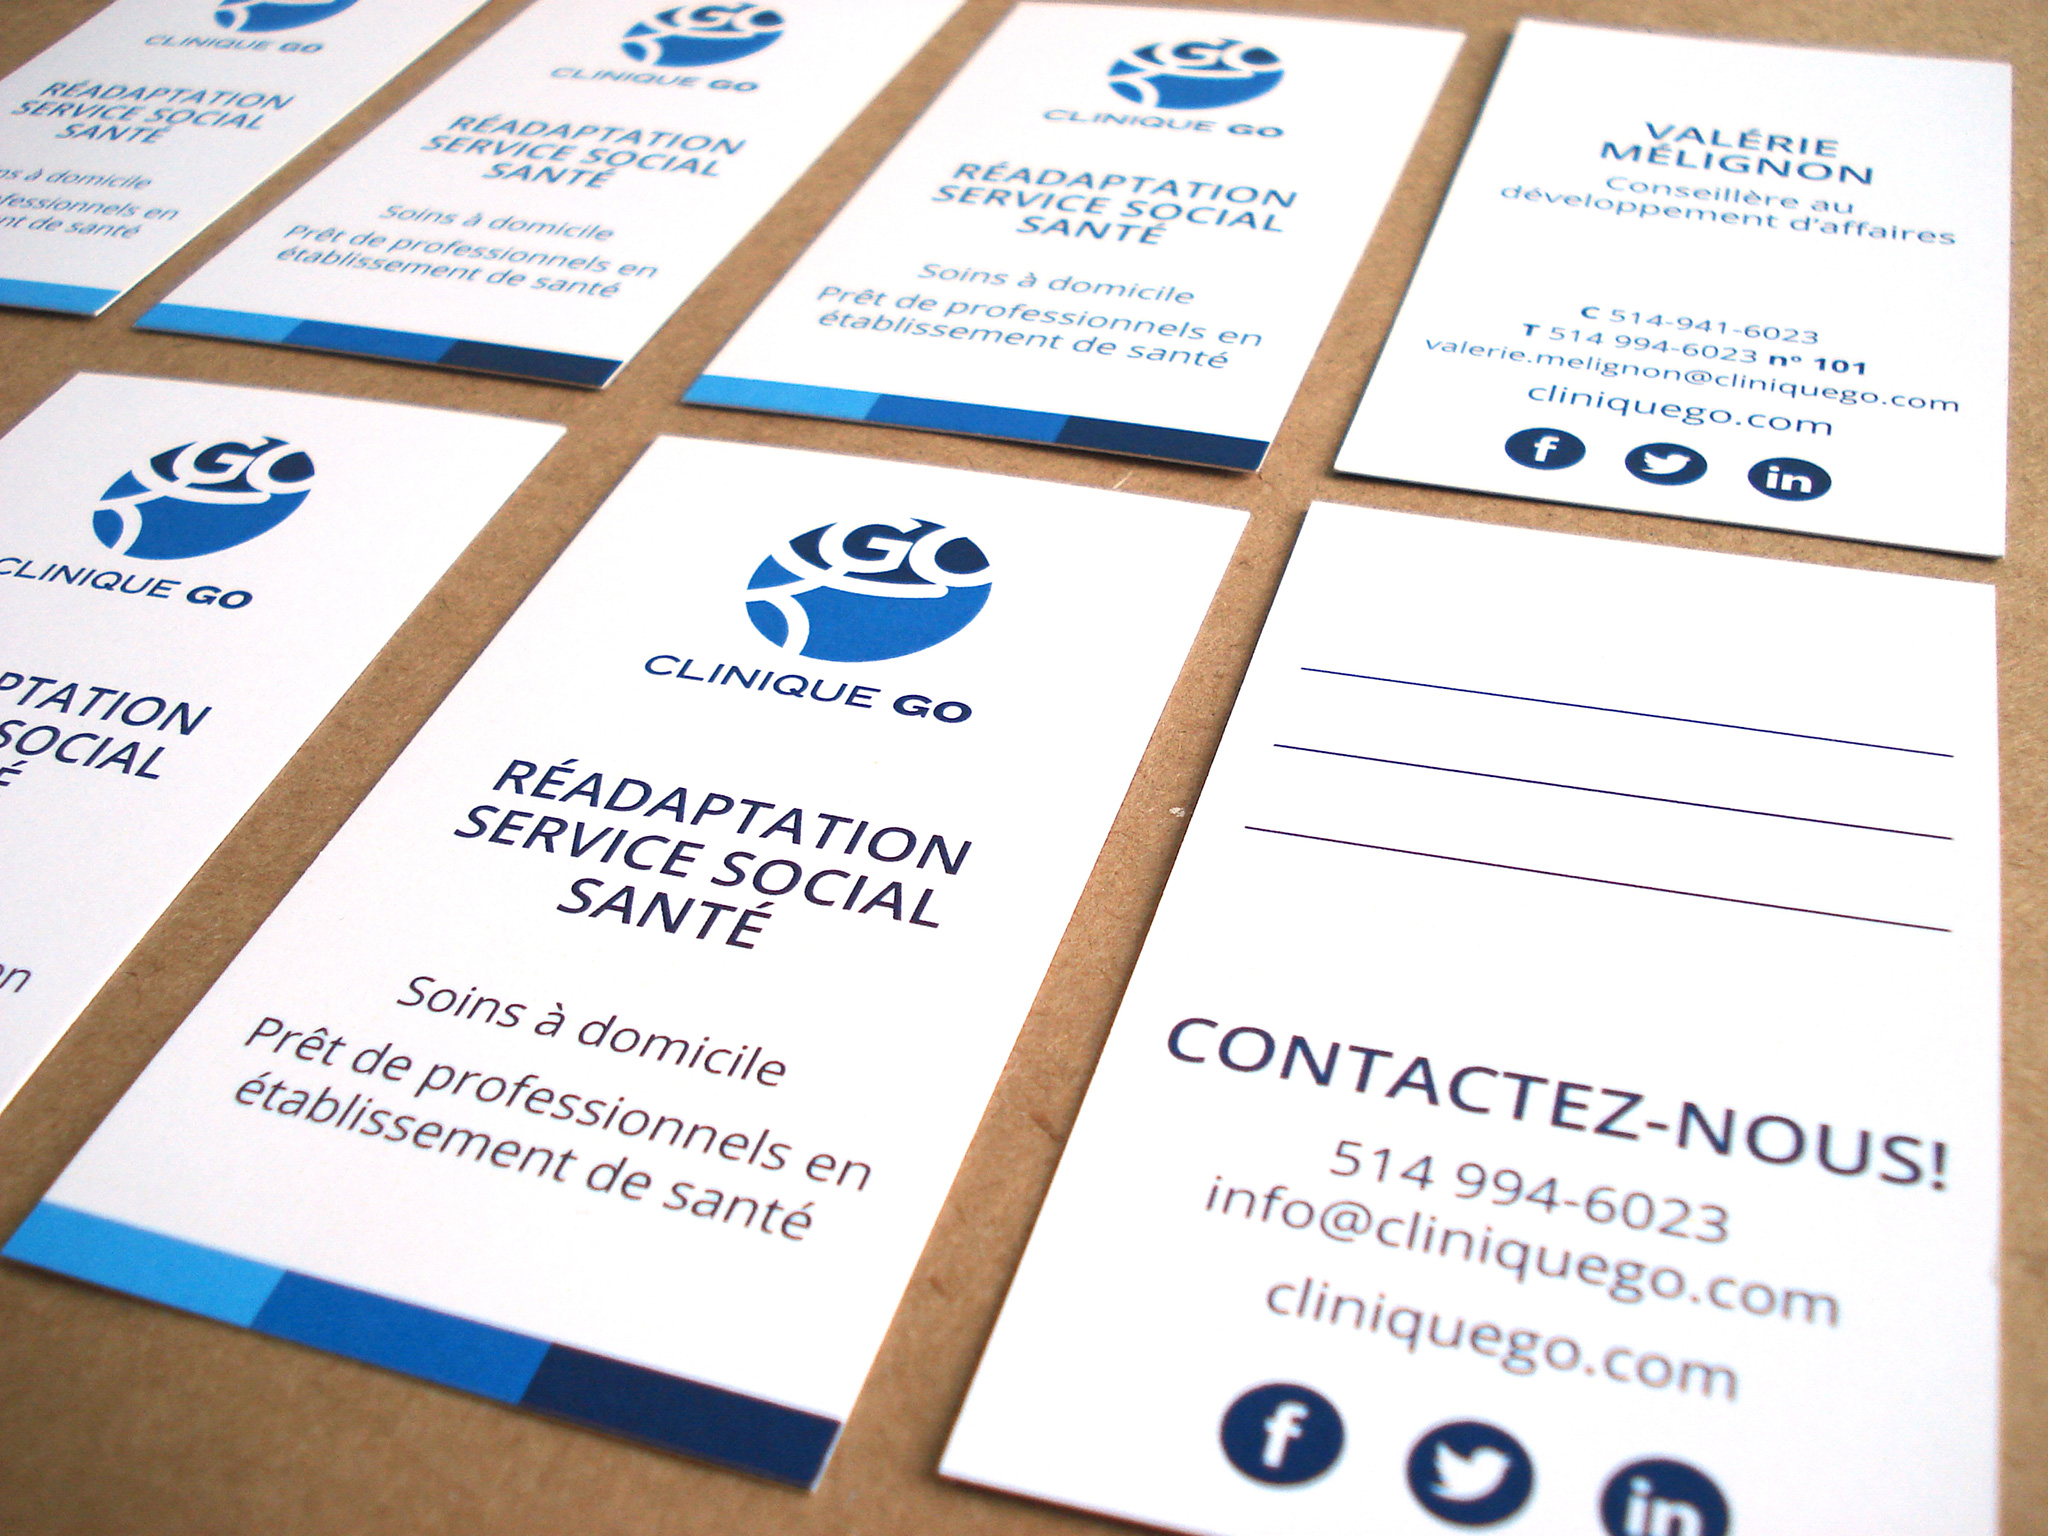 Cartes d'affaires de Clinique Go.